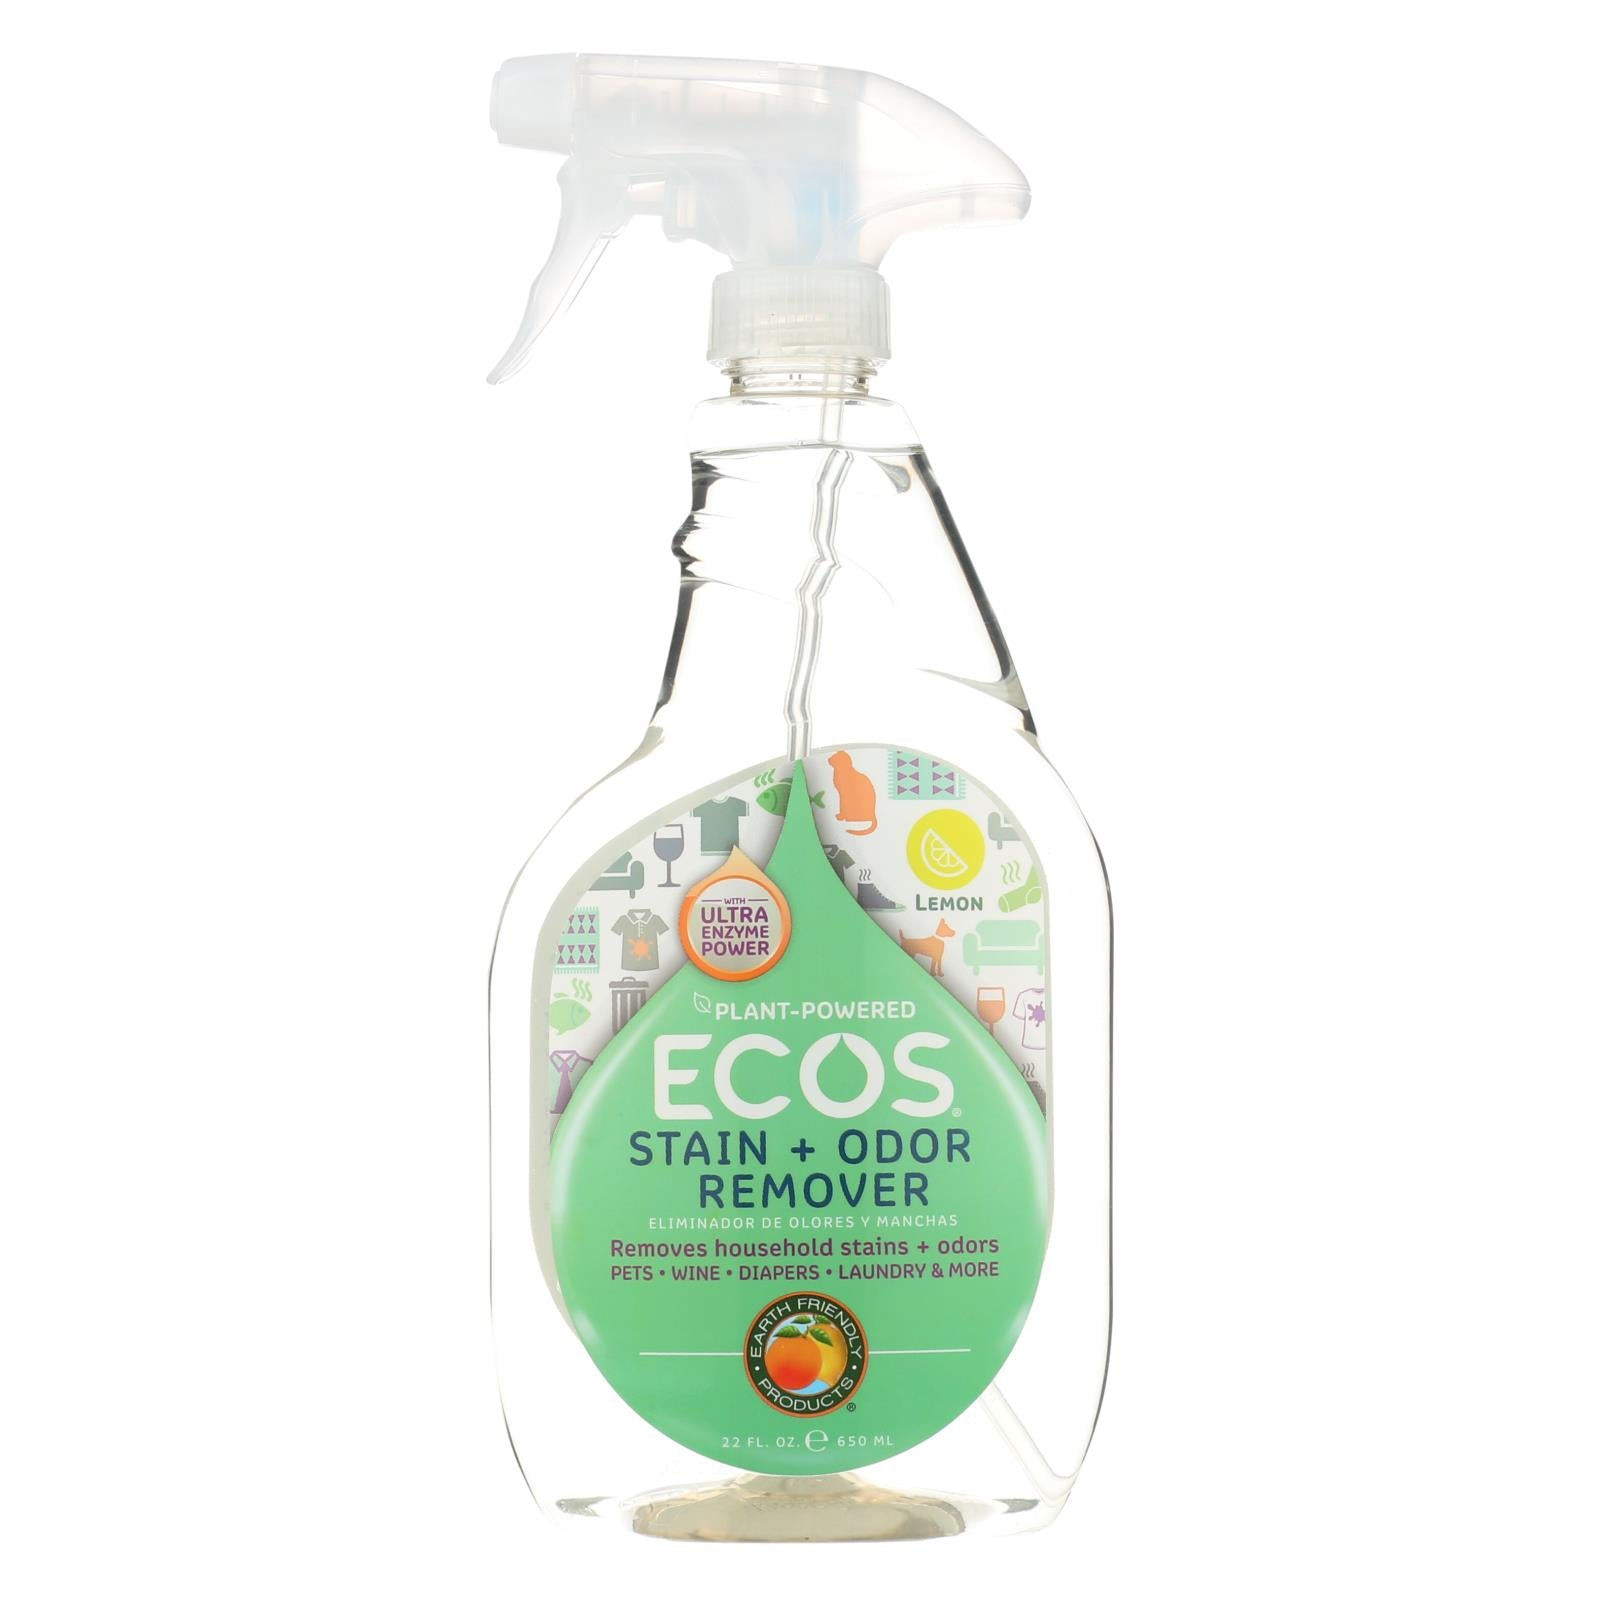 Buy Earth Friendly Stain and Odor Remover Spray - 22 fl oz - Household Cleaners from Veroeco.com